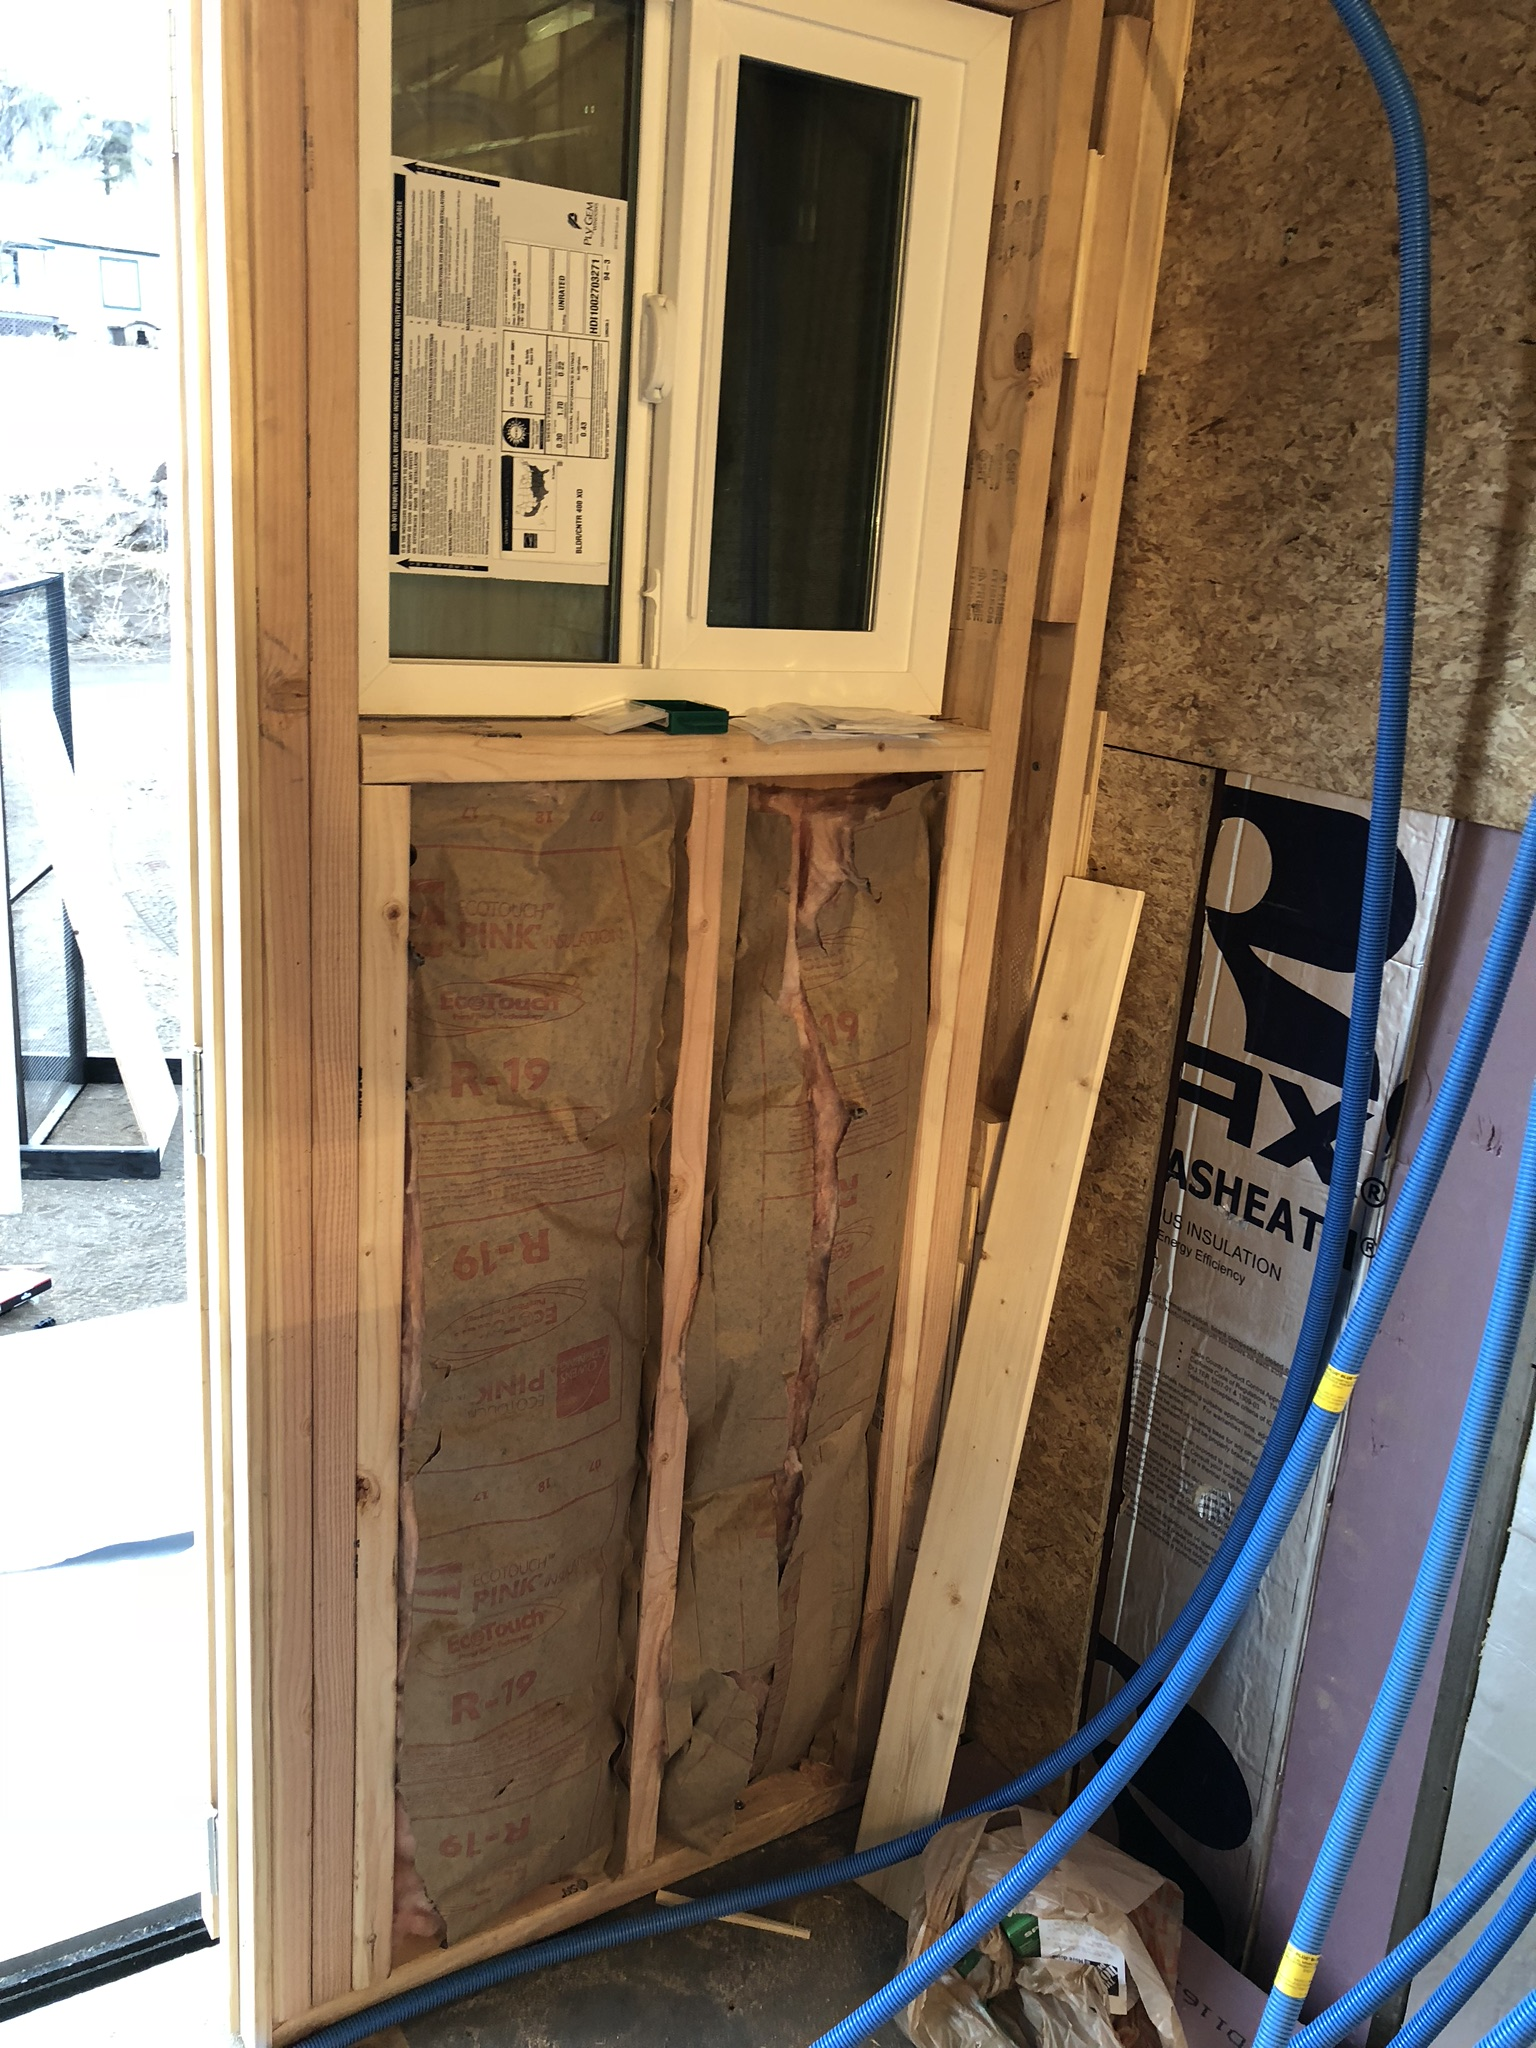 Time to insulate - We used typical R-19 house insulation for the back wall. Our windows are also double paned which will help on hot or cold days.